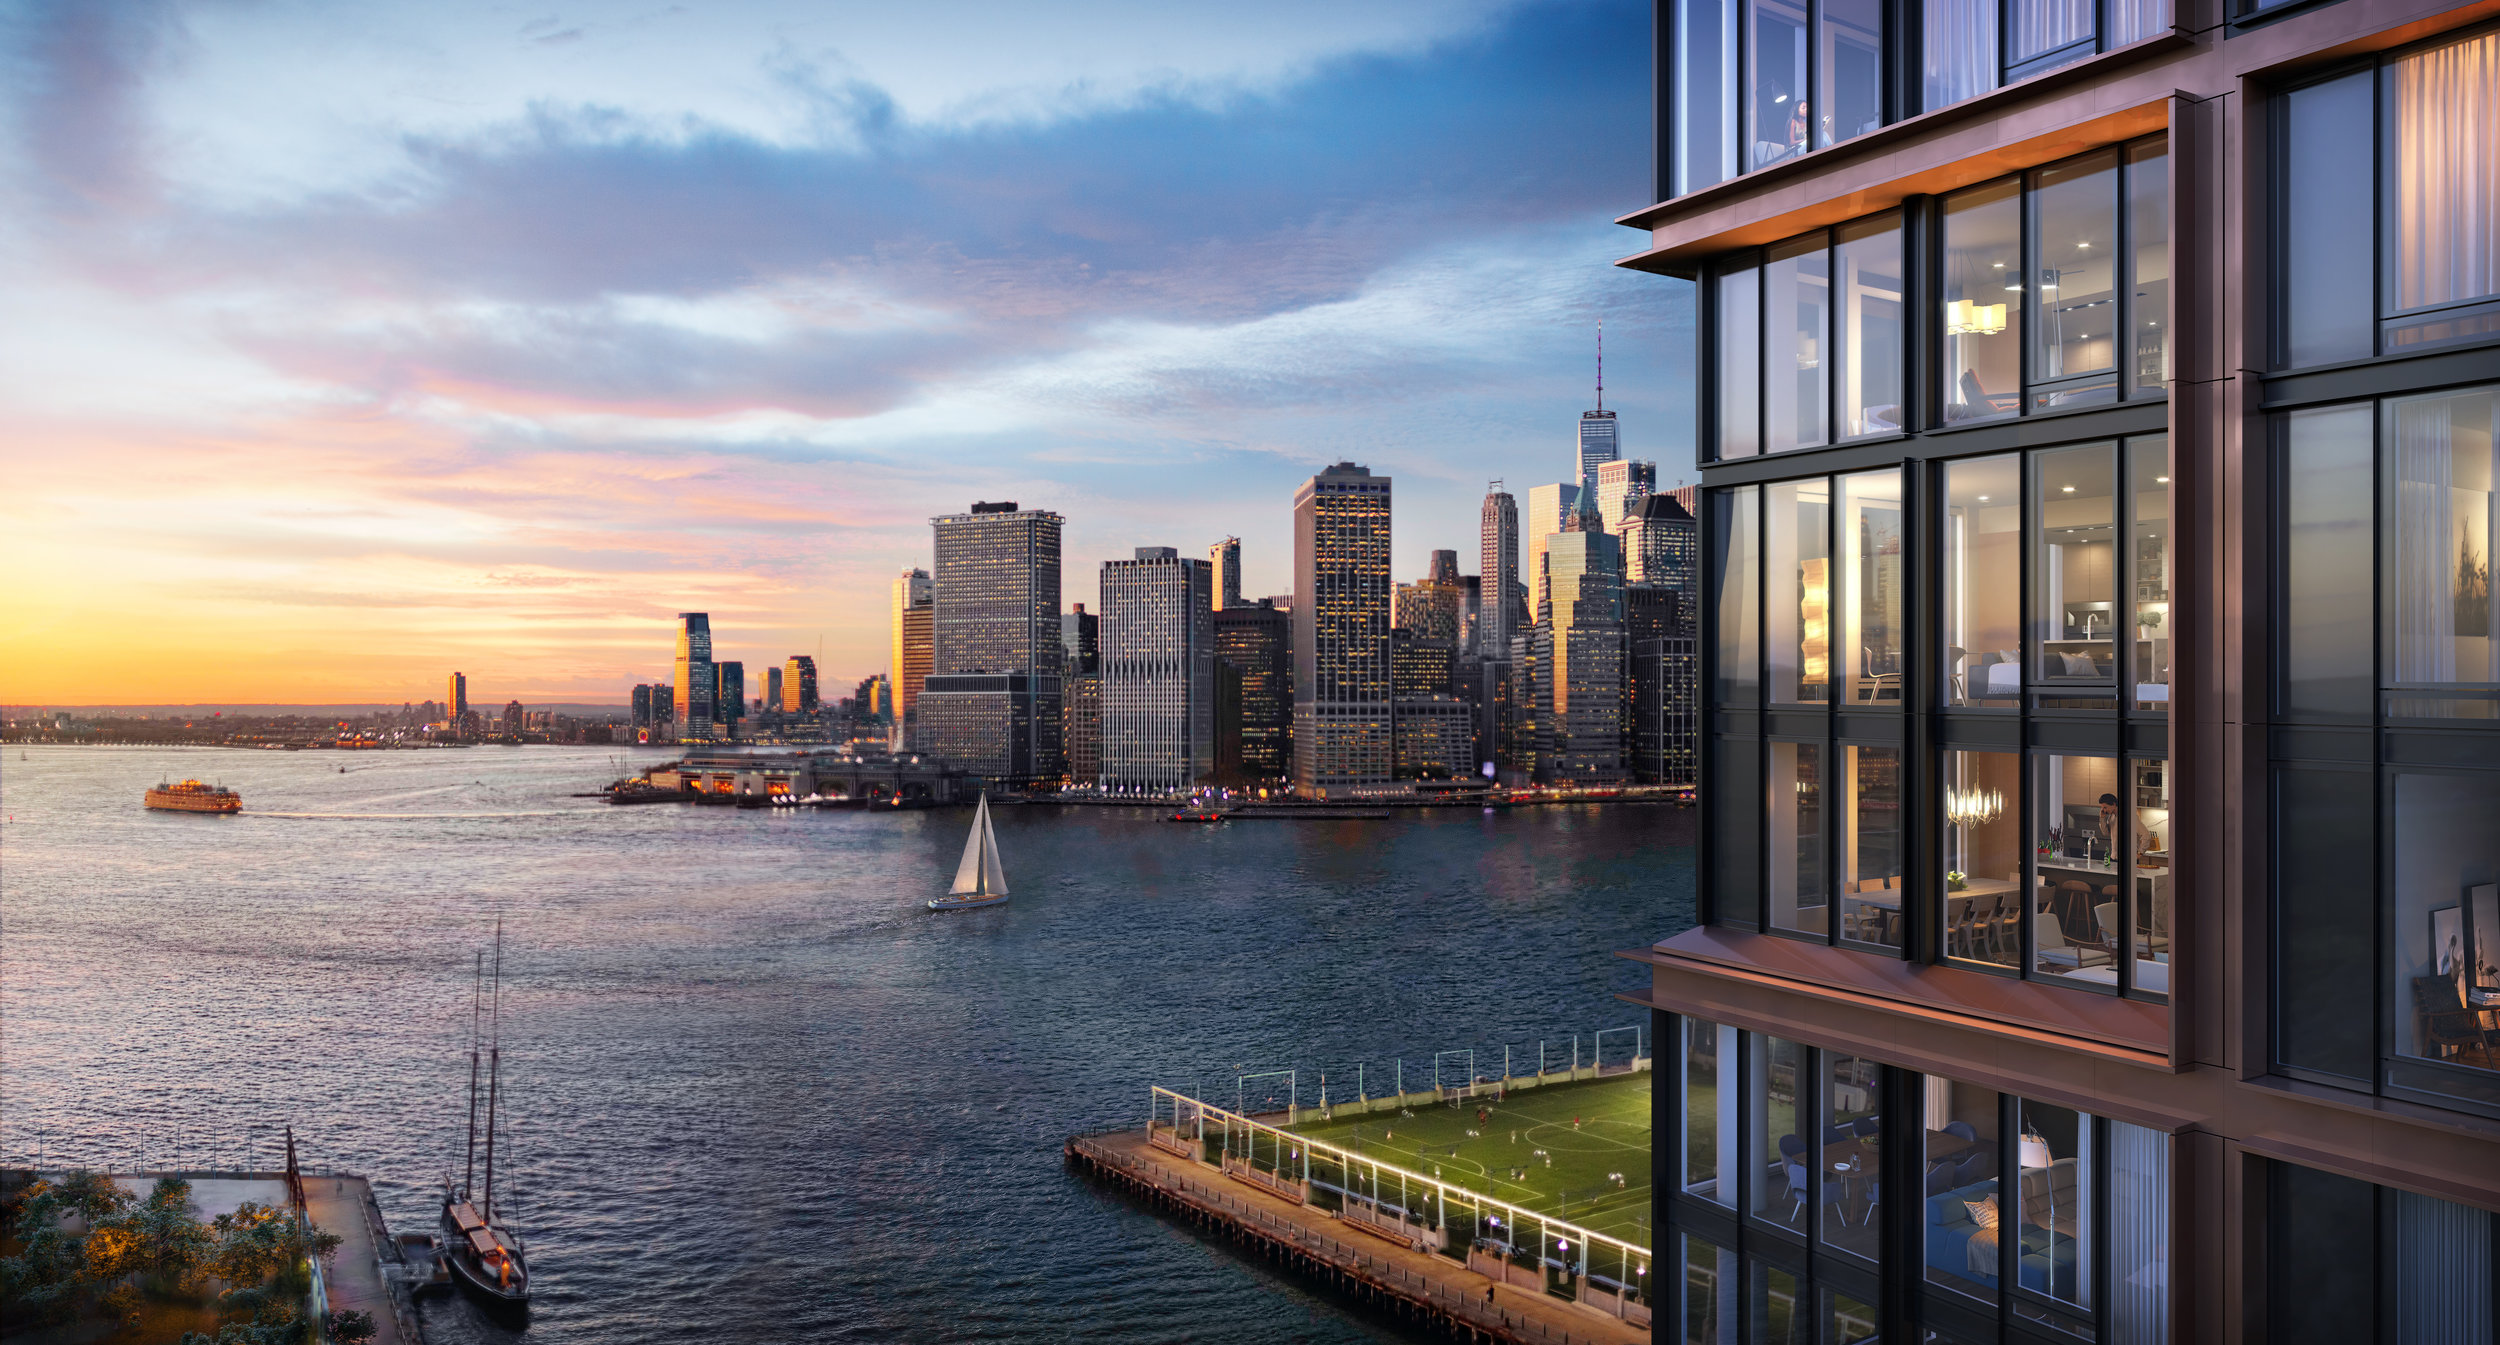 Get a First Look At The Newly Revealed Quay Tower at Pier 6 in Brooklyn Bridge Park